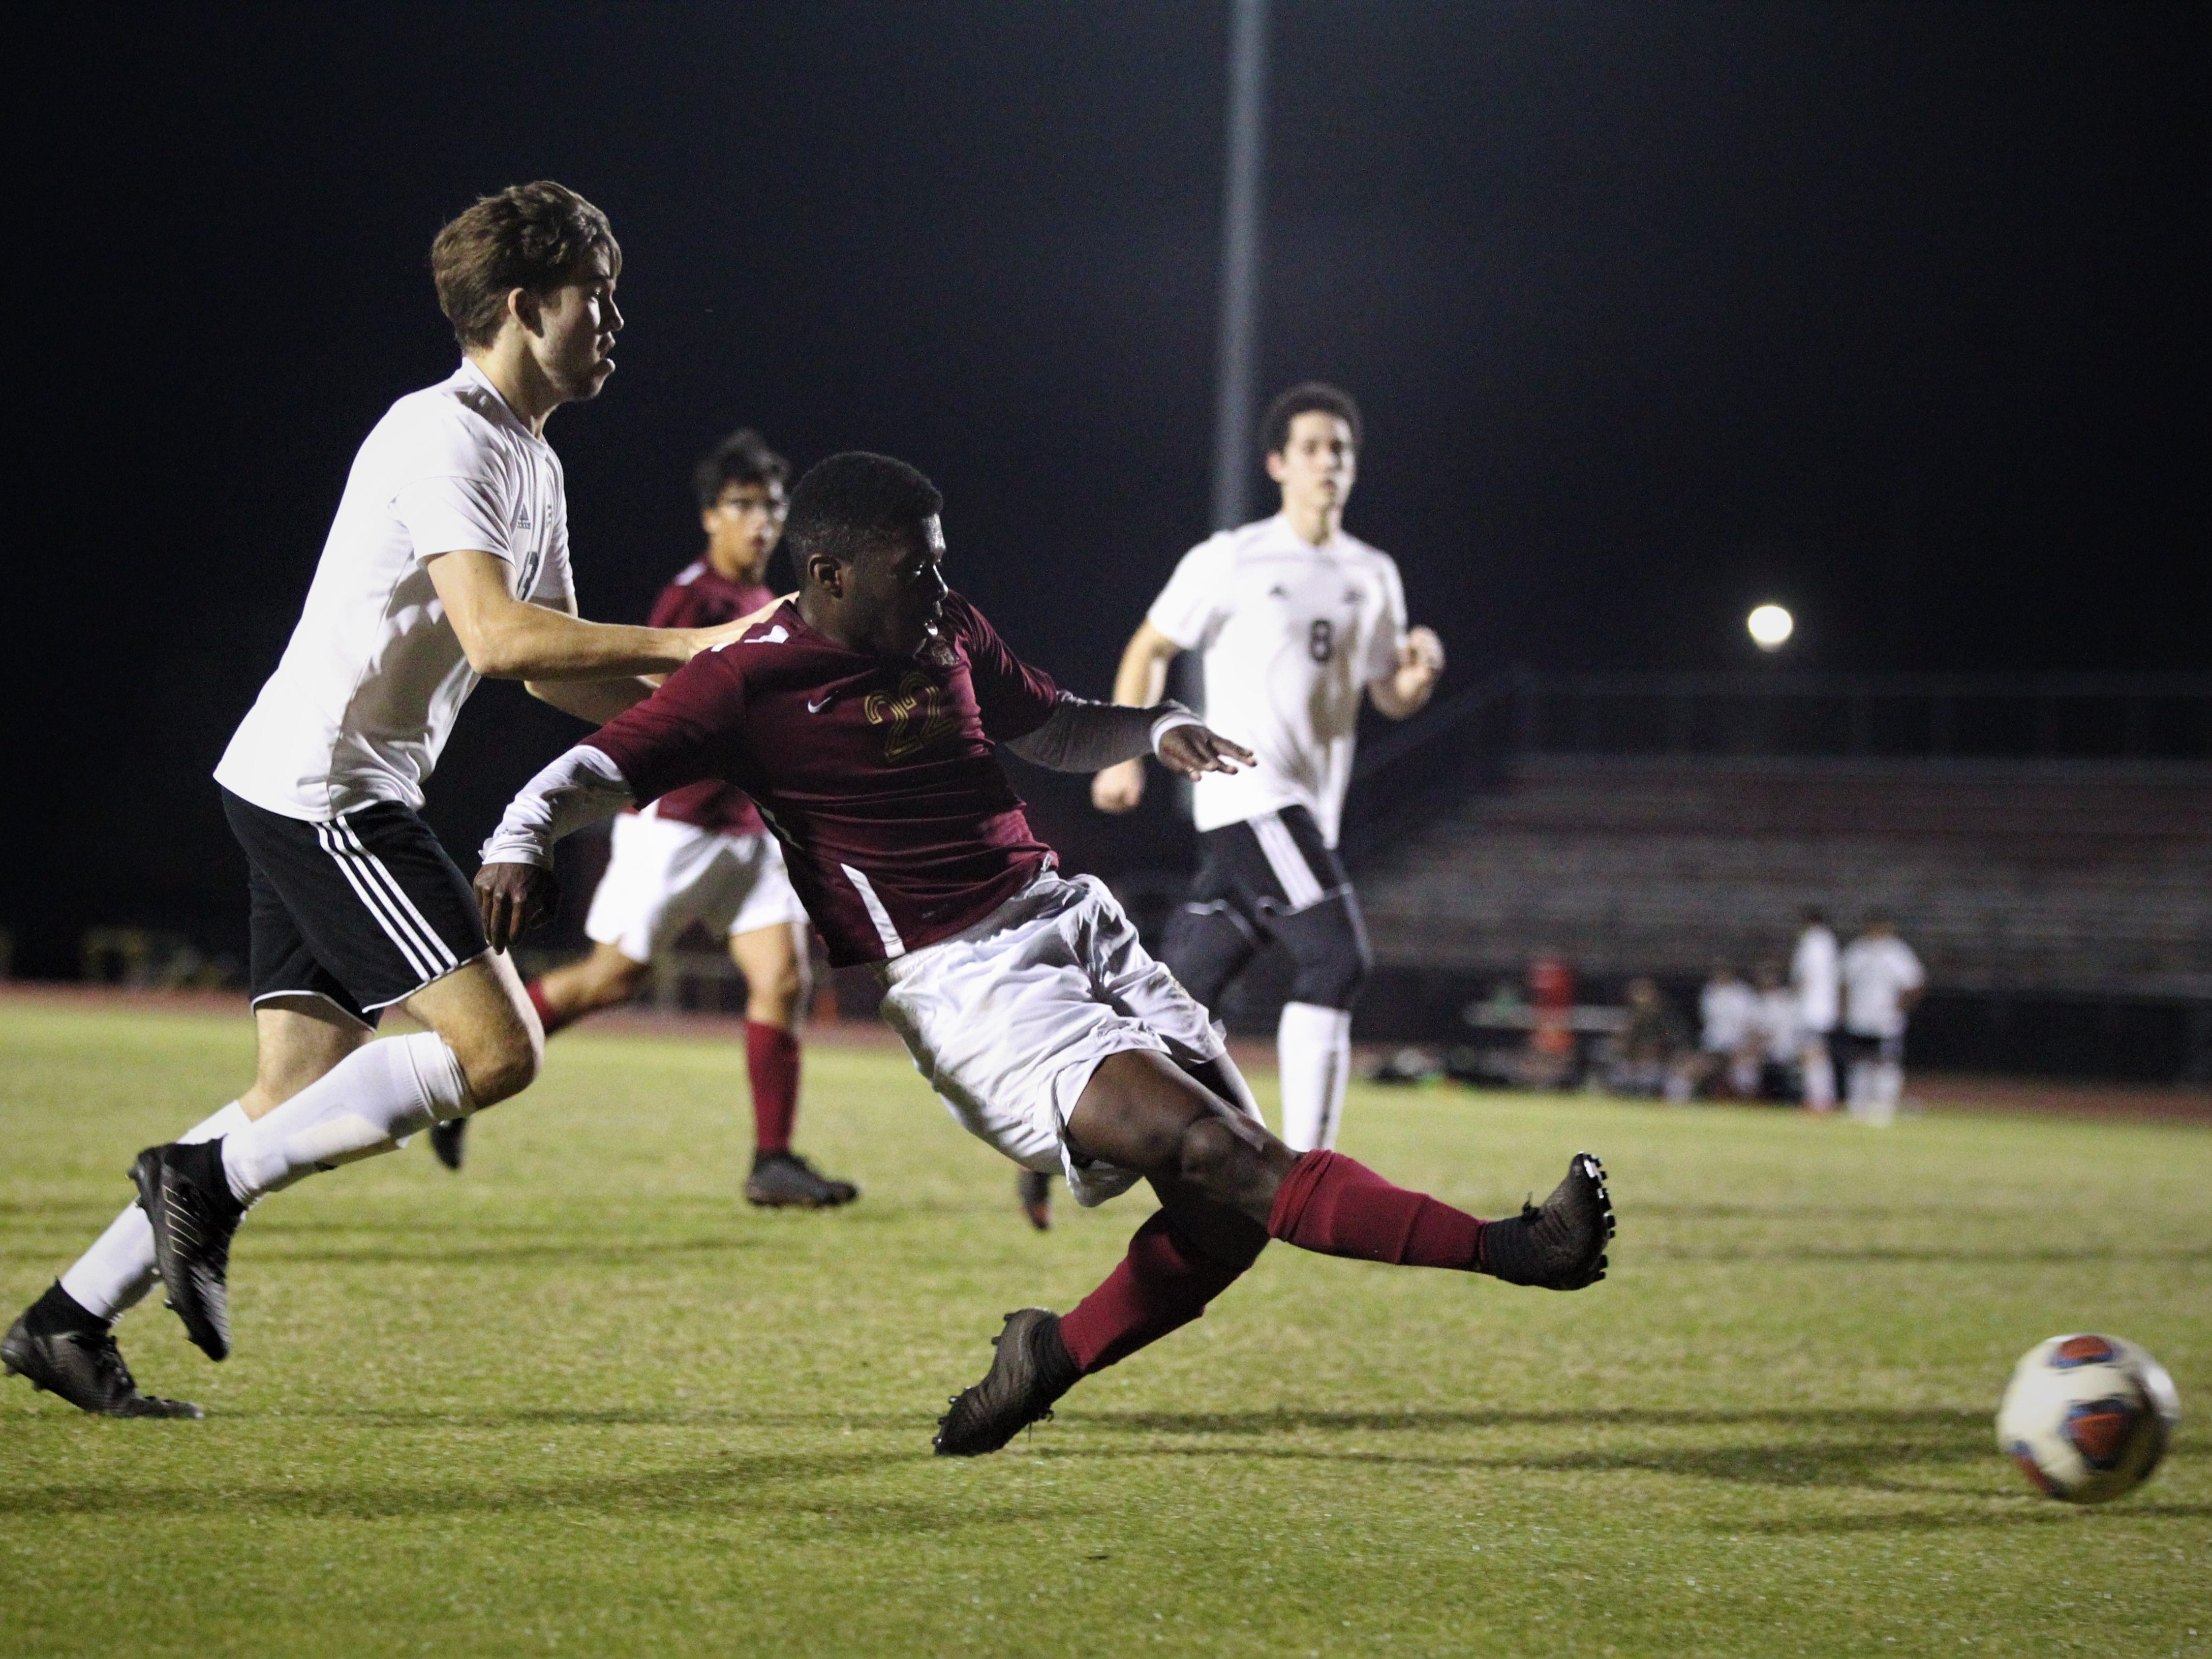 Florida High's Delali Simpson takes a shot on goal that is saved as Florida High's boys soccer team beat South Walton 2-0 during a Region 1-2A quarterfinal on Feb. 6, 2018.